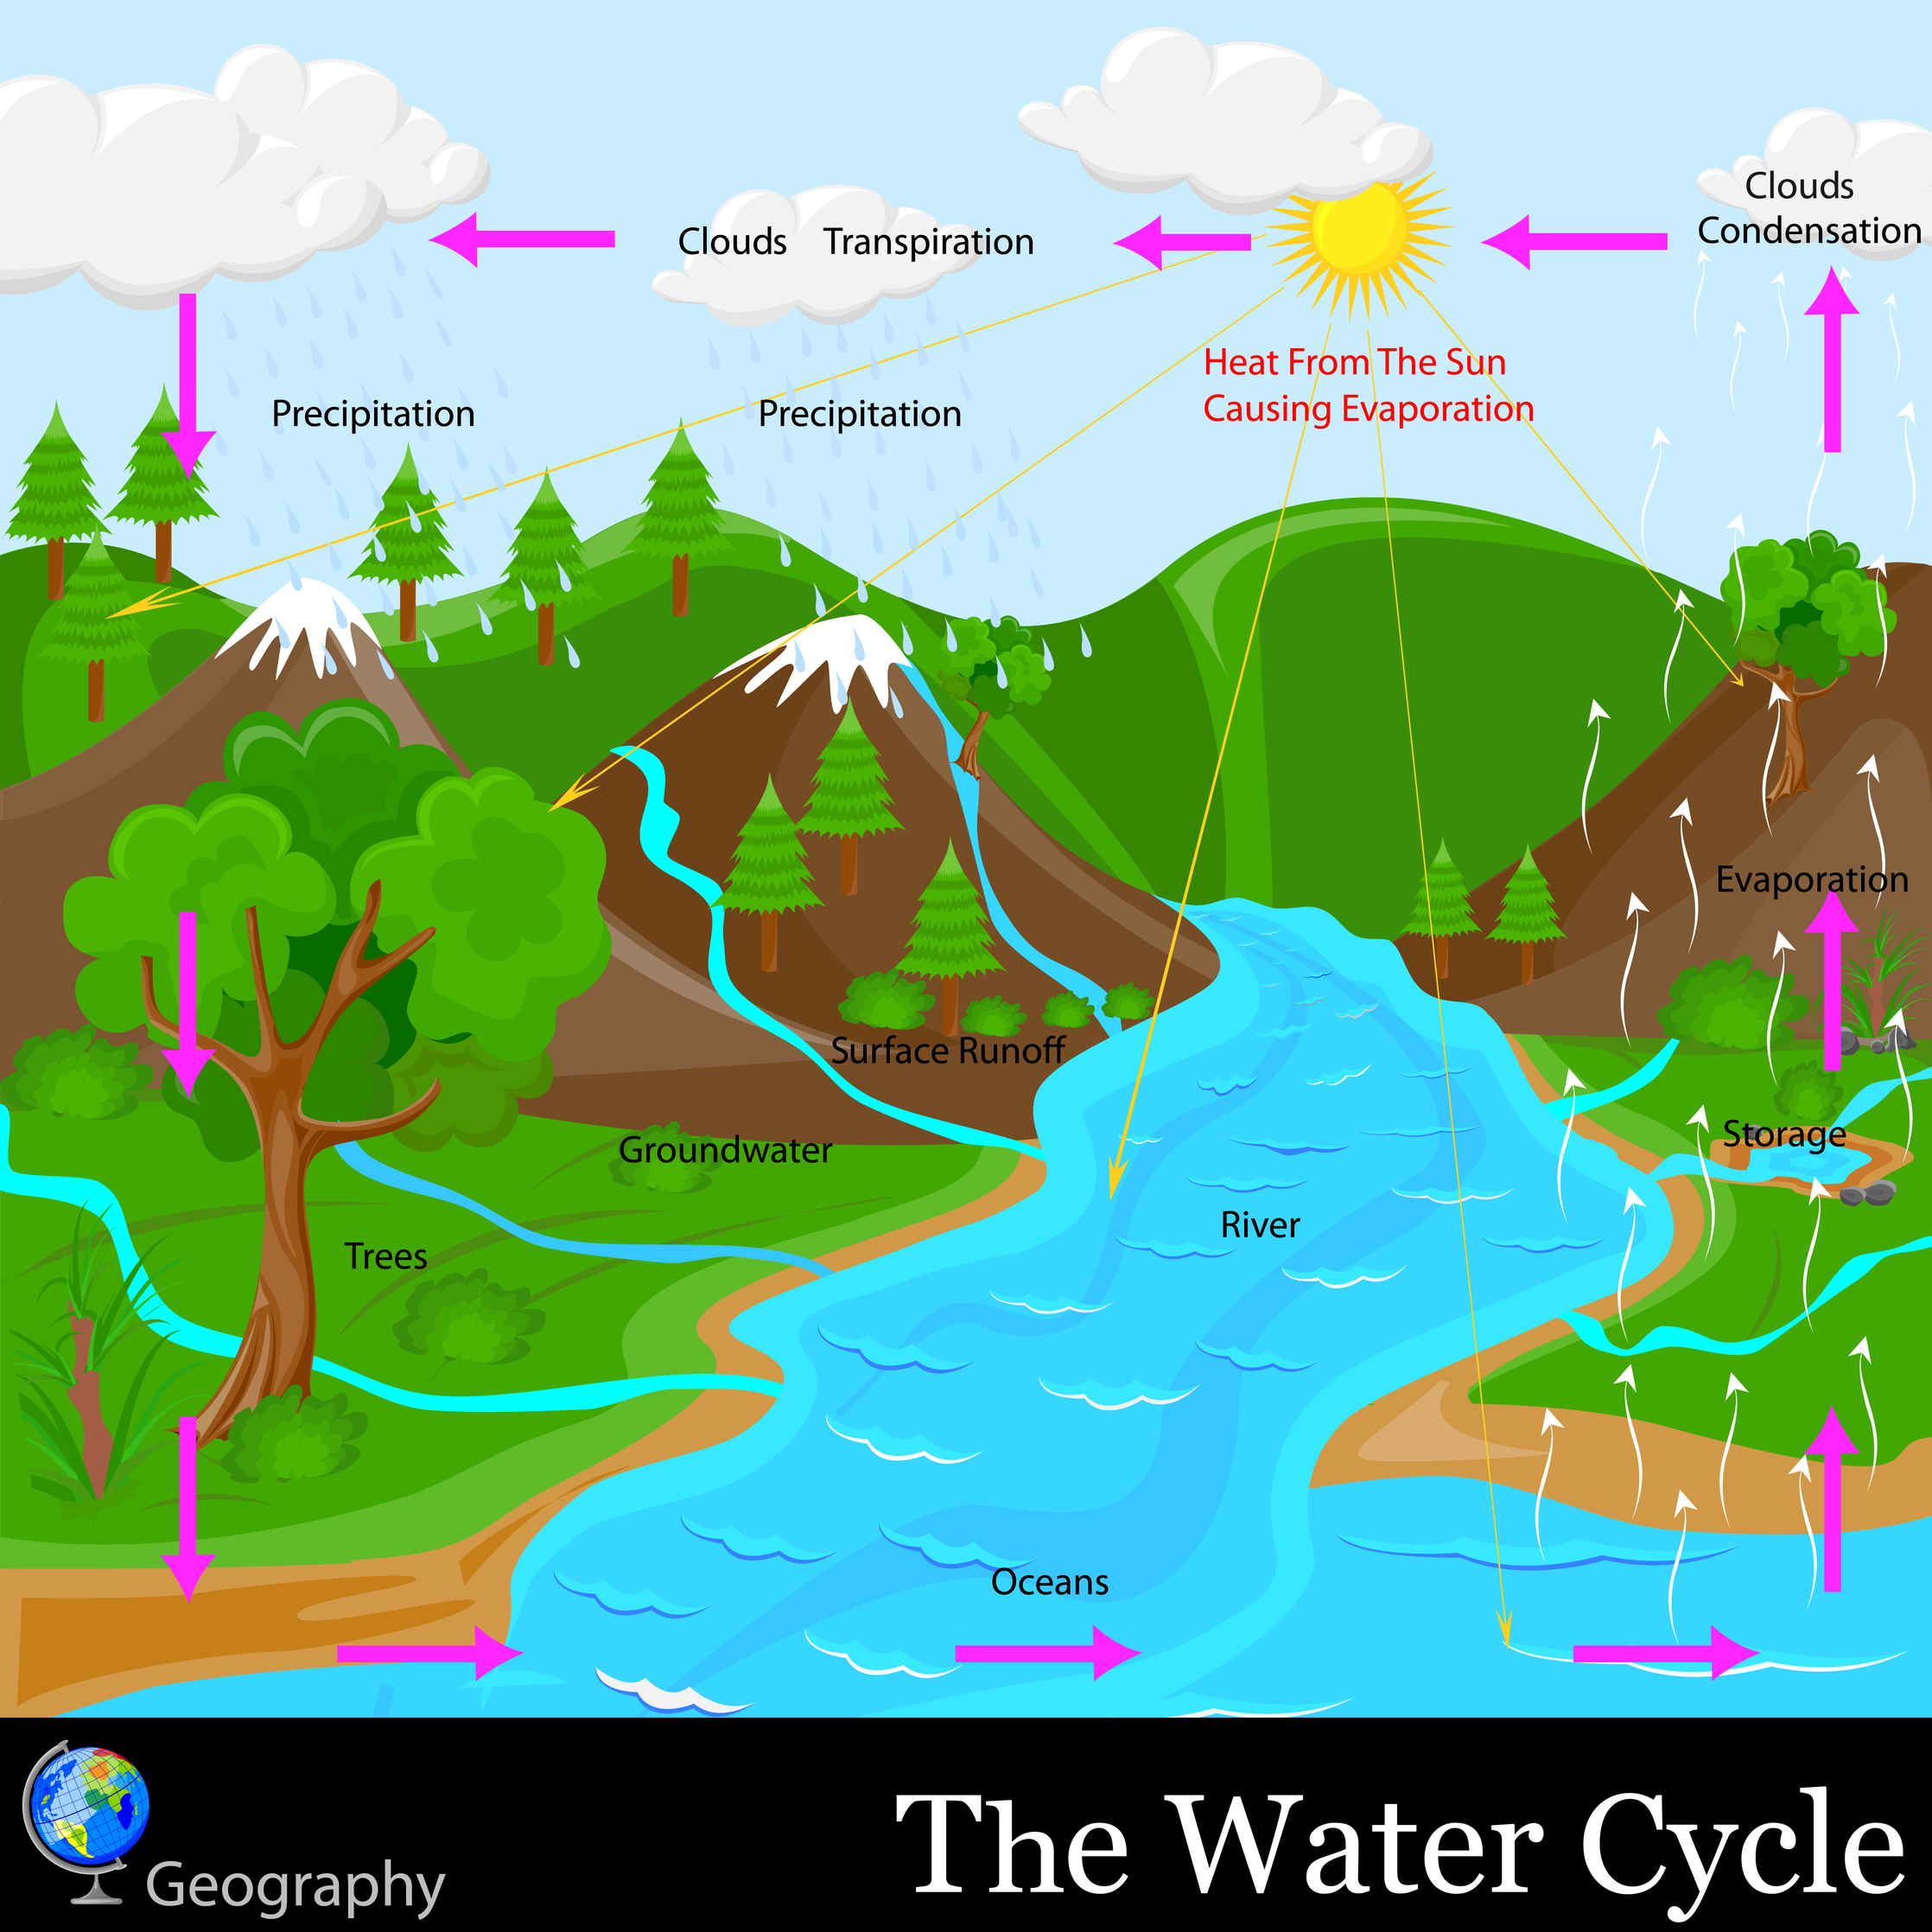 1 Evaporation Heat Normally From The Sun Can Turn Water A Liquid Into Gas Called Vapor Happen Any In World